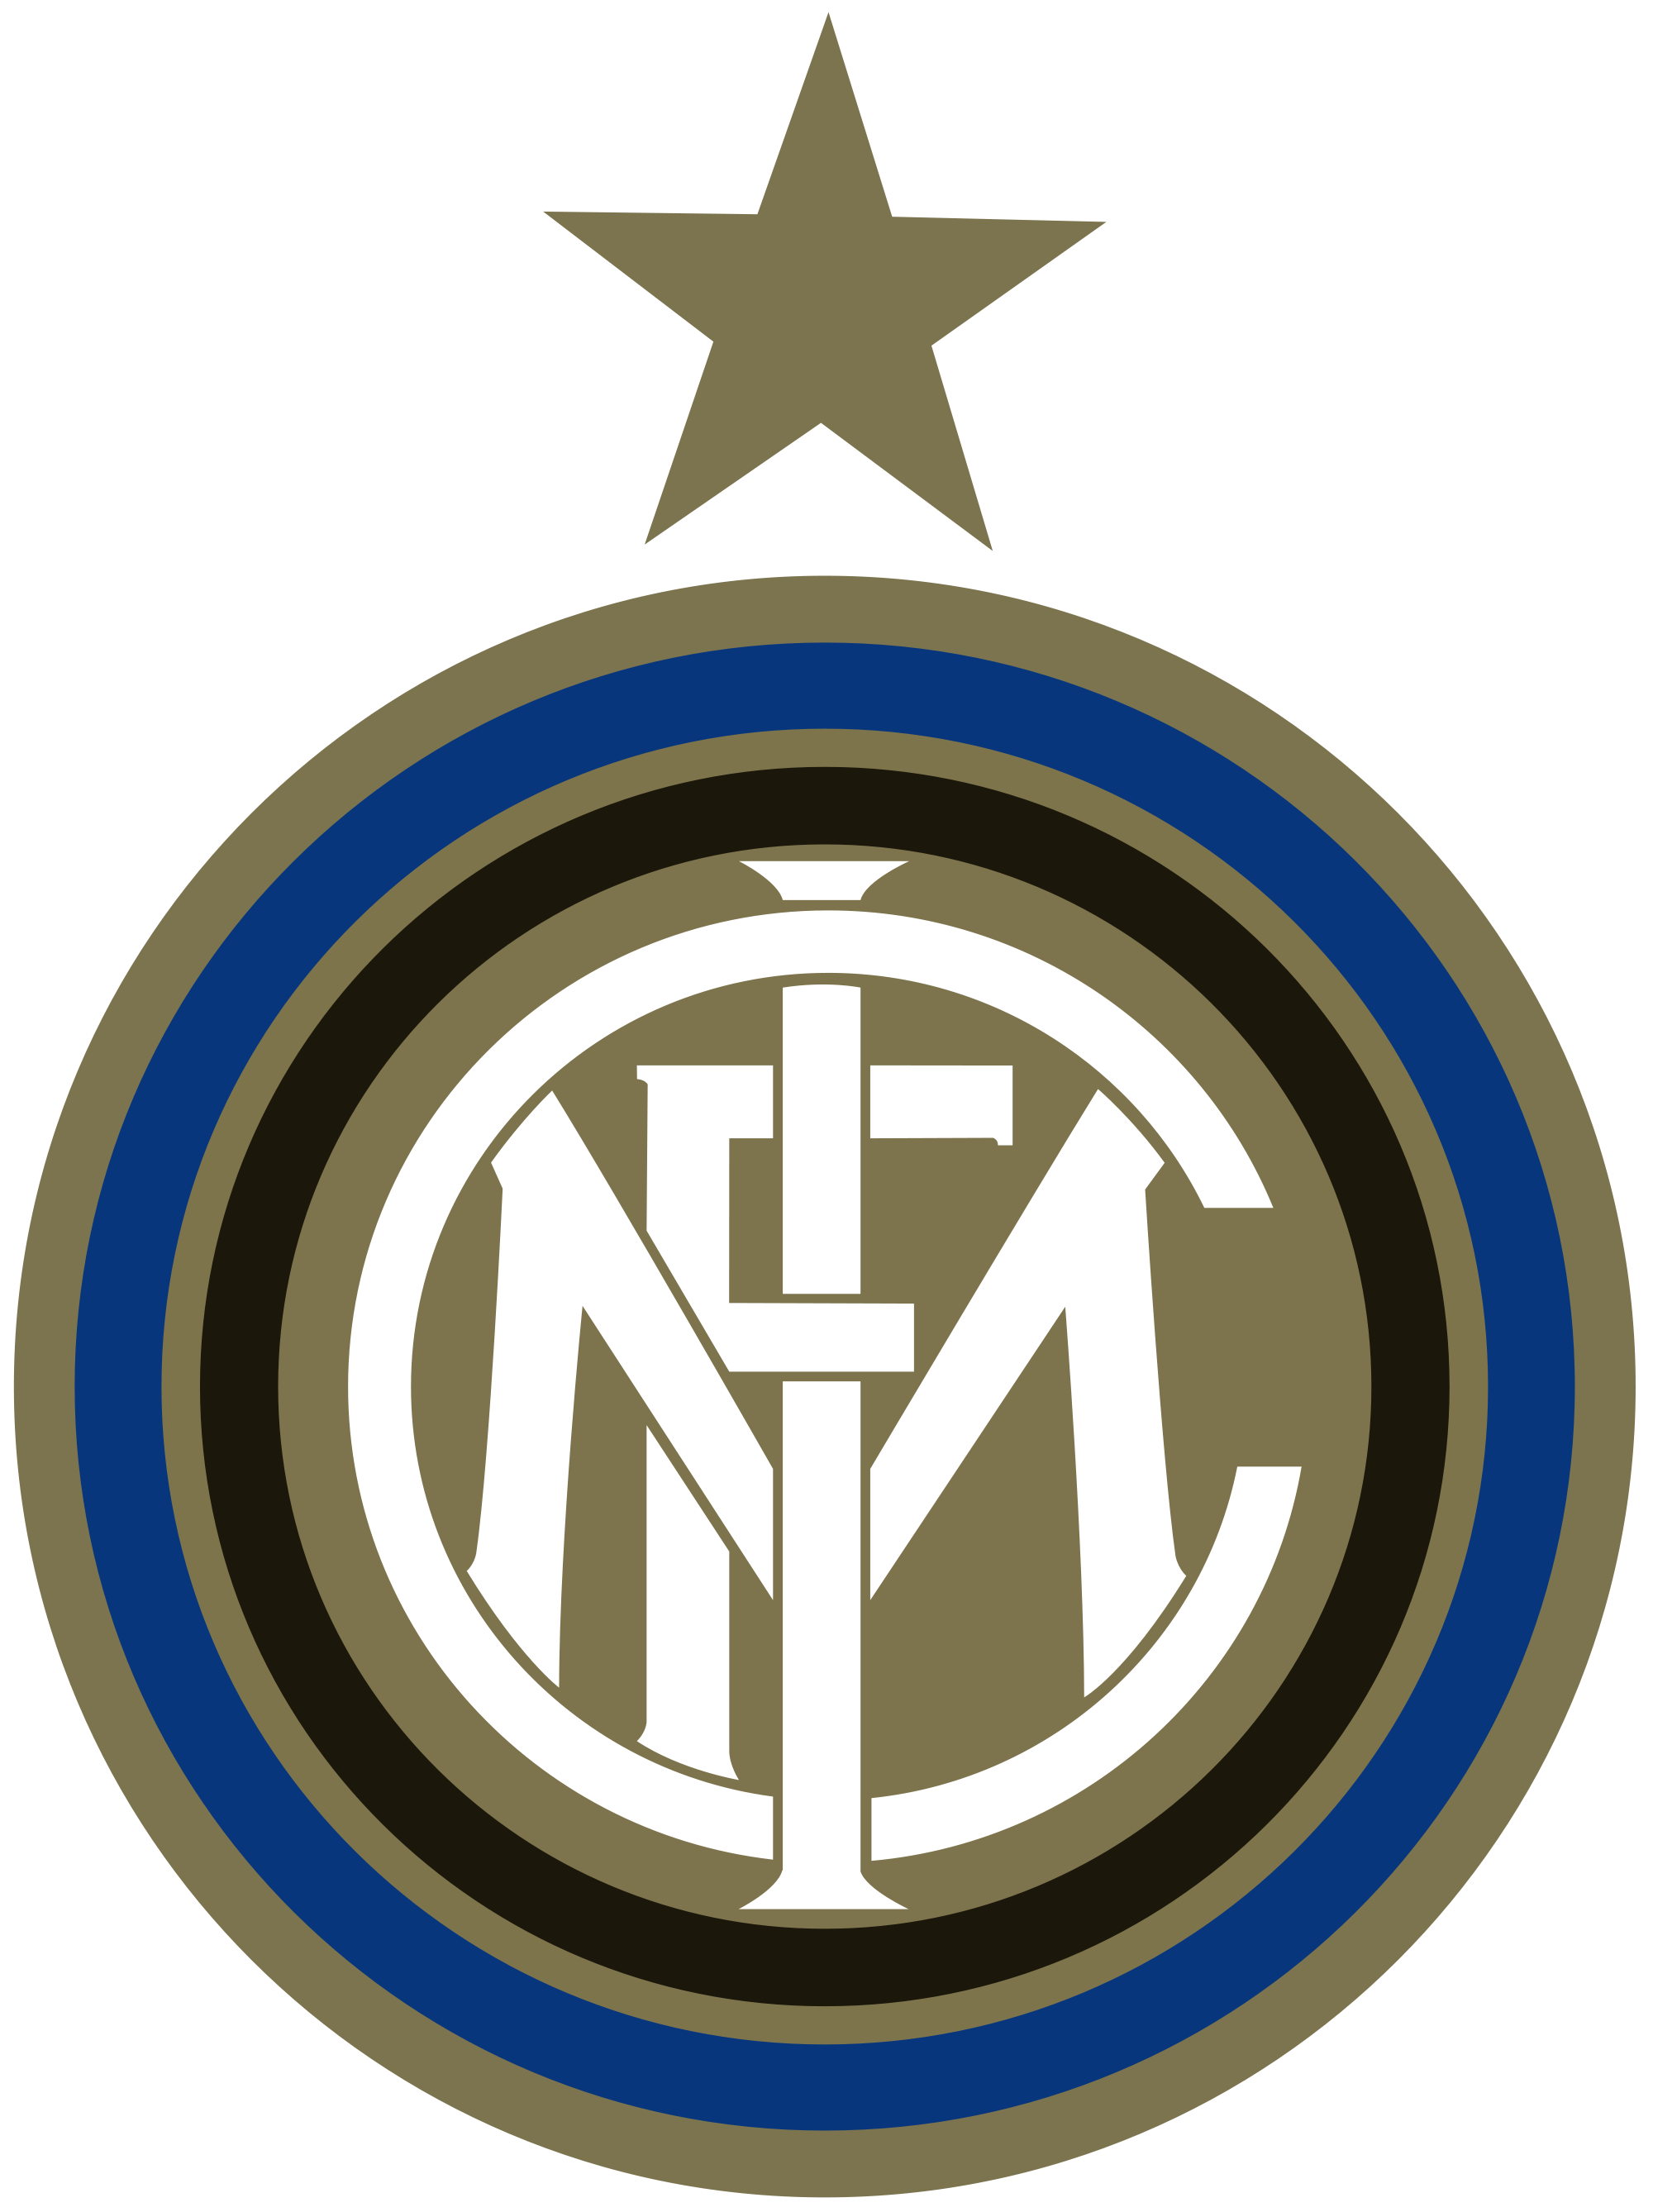 sun inter milan logo - photo #4